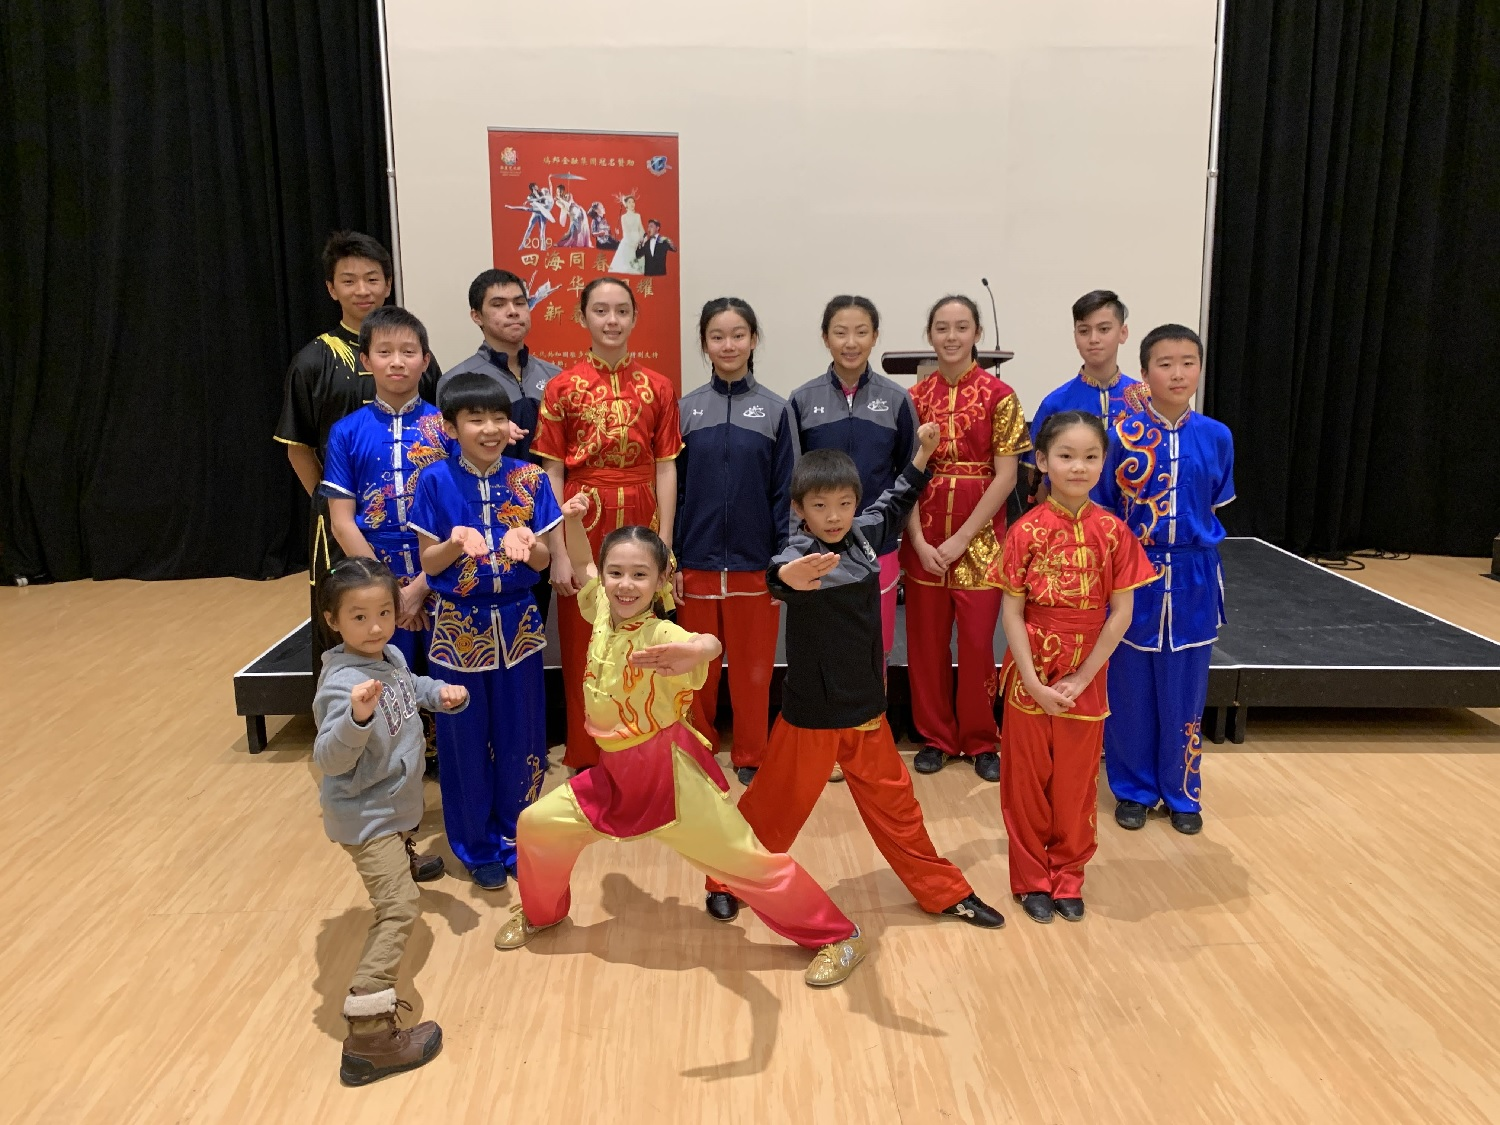 wayland-li-wushu-richmond-hill-centre-chinese-new-year-2019-04.jpg